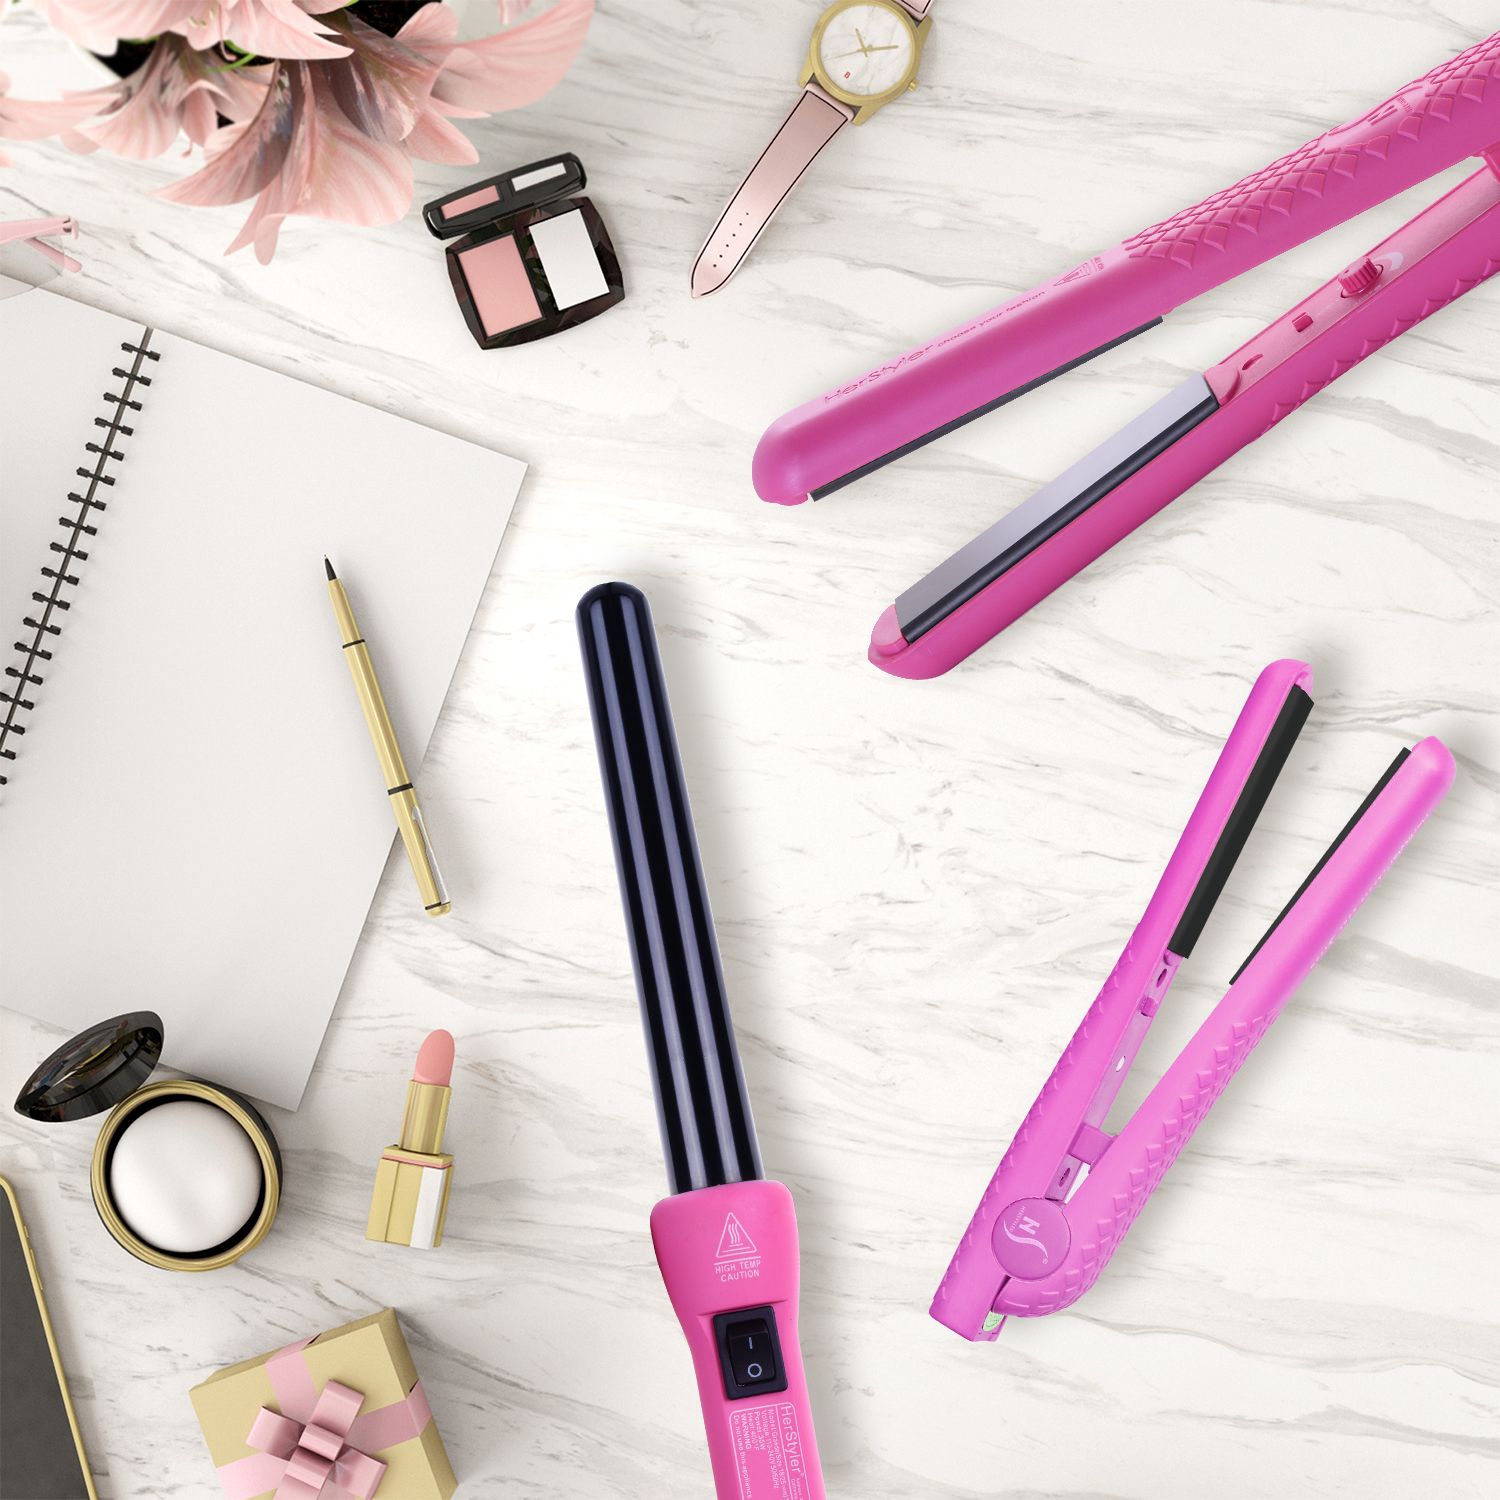 Herstyler Complete Flat Iron and Curling Iron Set | Dual Voltage | Pink